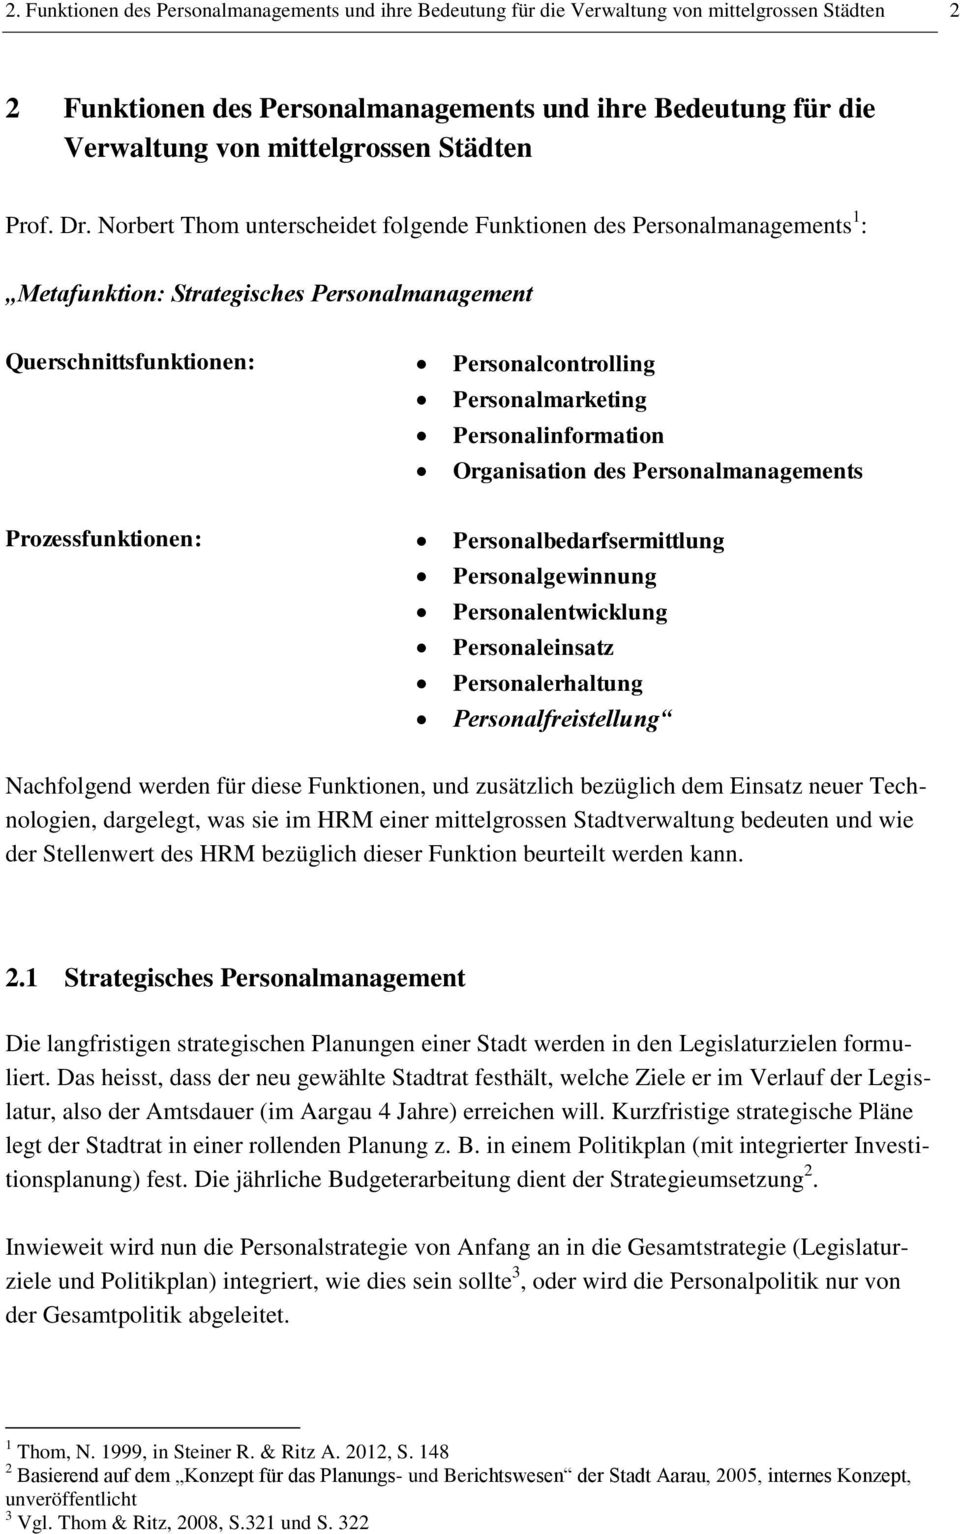 Norbert Thom unterscheidet folgende Funktionen des Personalmanagements 1 : Metafunktion: Strategisches Personalmanagement Querschnittsfunktionen: Personalcontrolling Personalmarketing